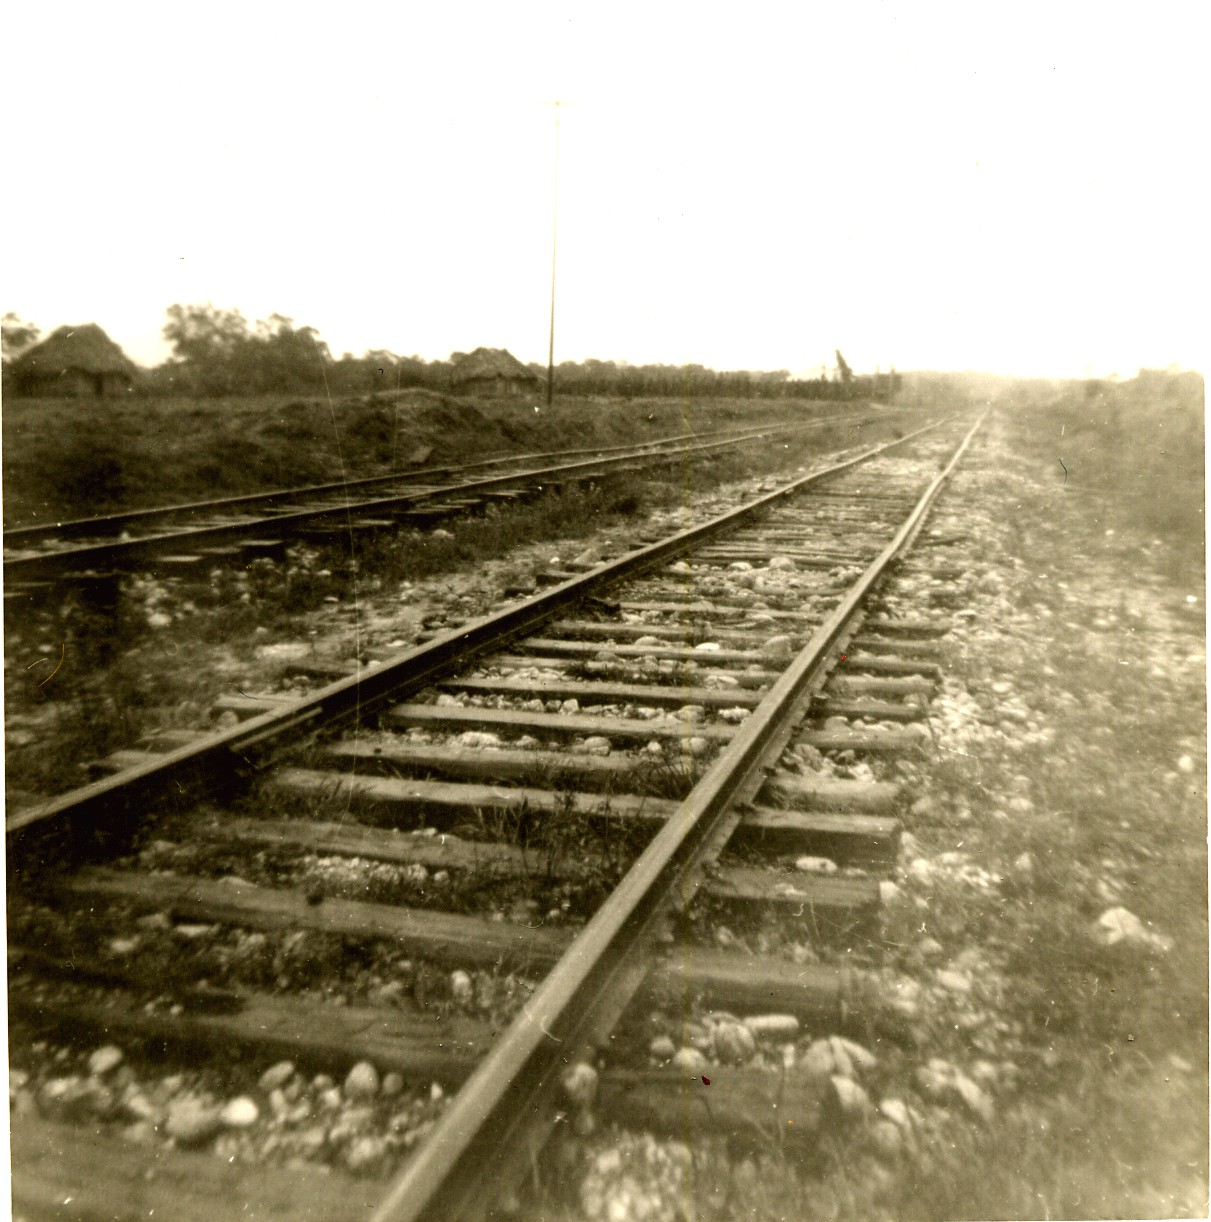 Tracks of Ferrocarril del Sureste